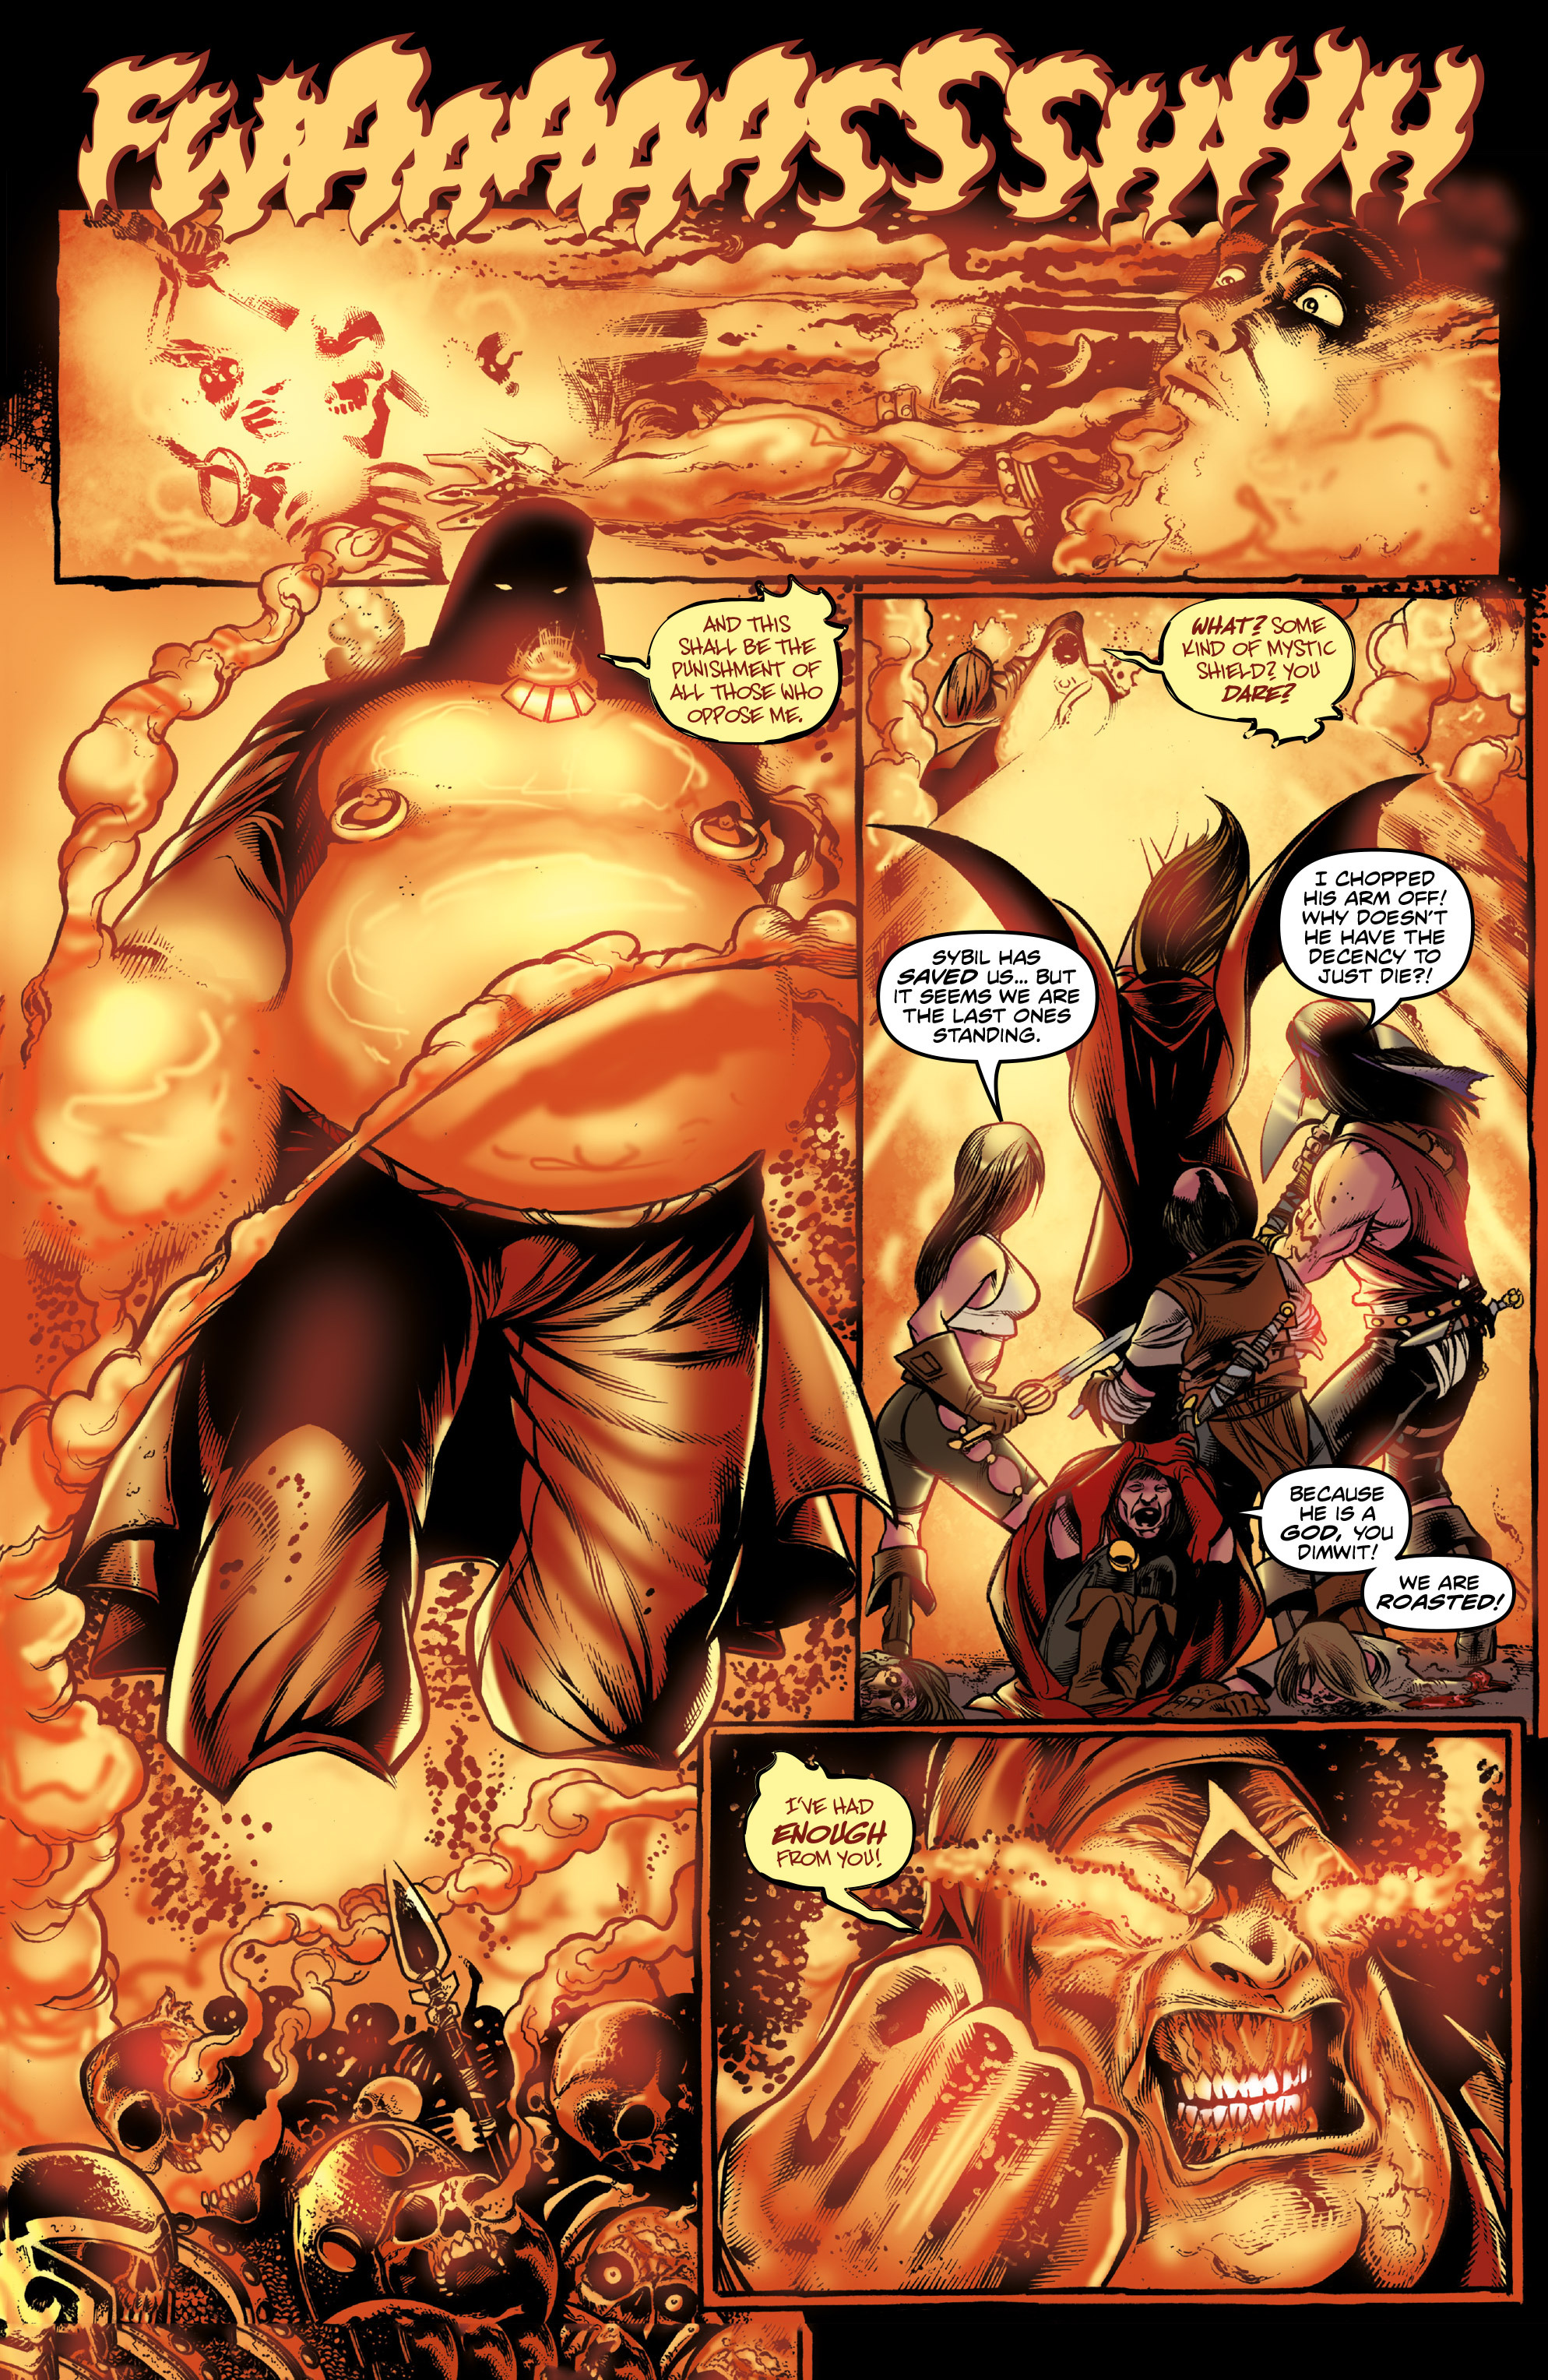 Read online Rogues!: The Burning Heart comic -  Issue #3 - 17